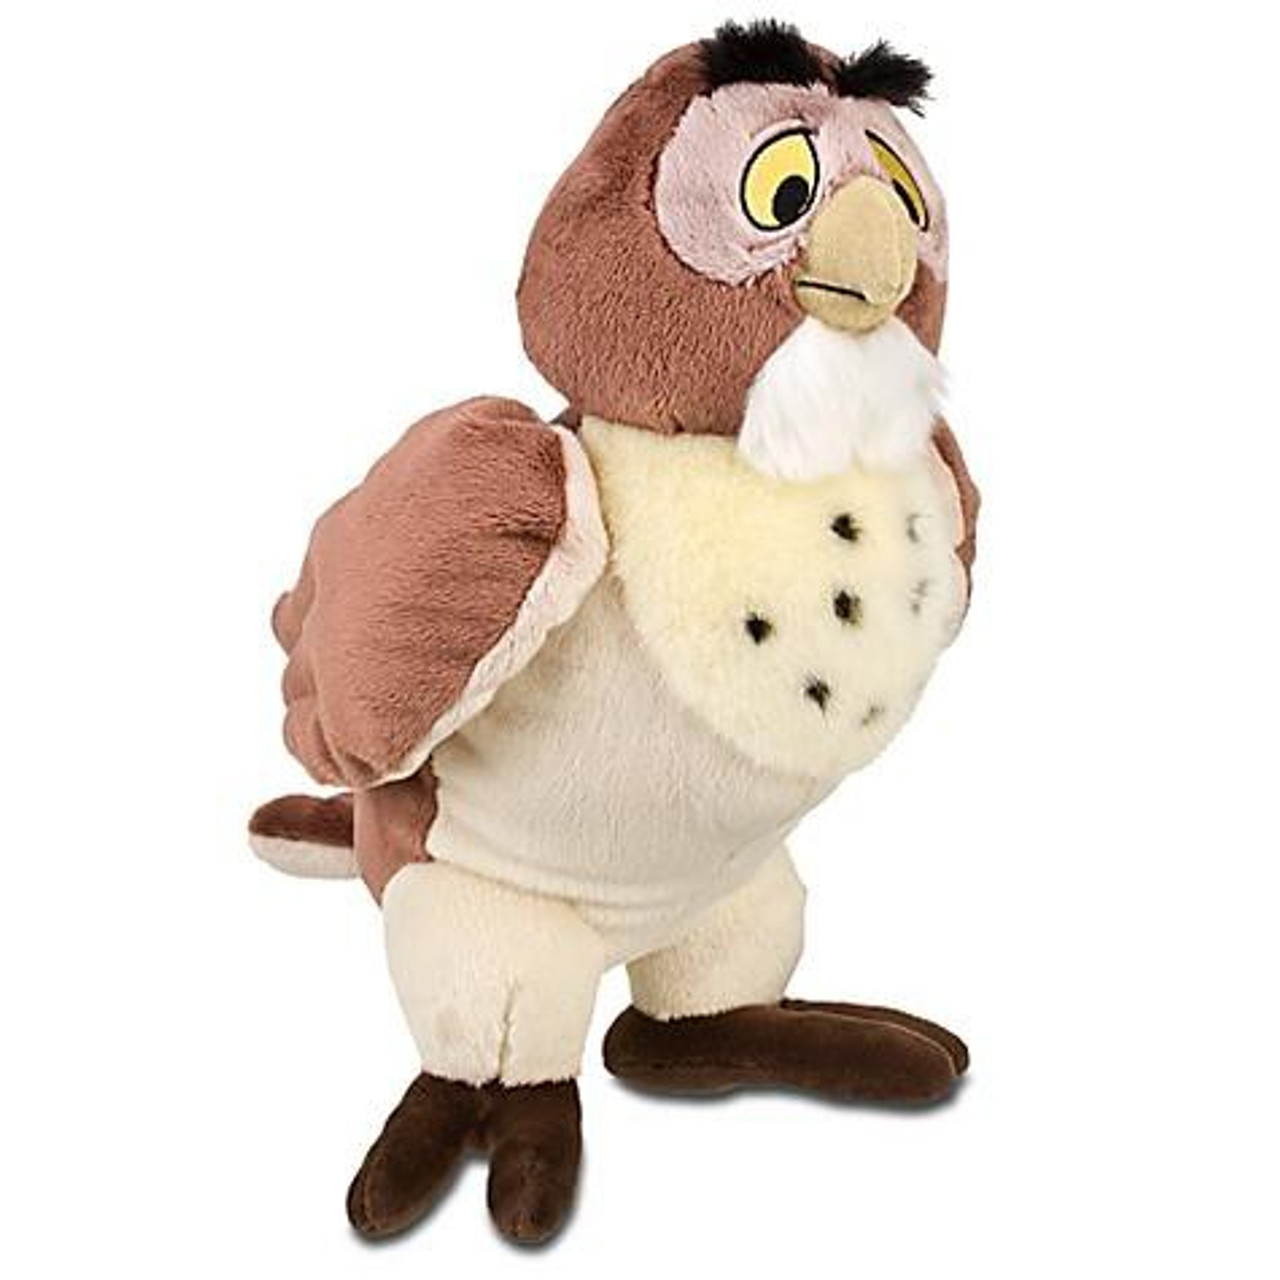 Disney Winnie the Pooh Owl Exclusive 13-Inch Plush